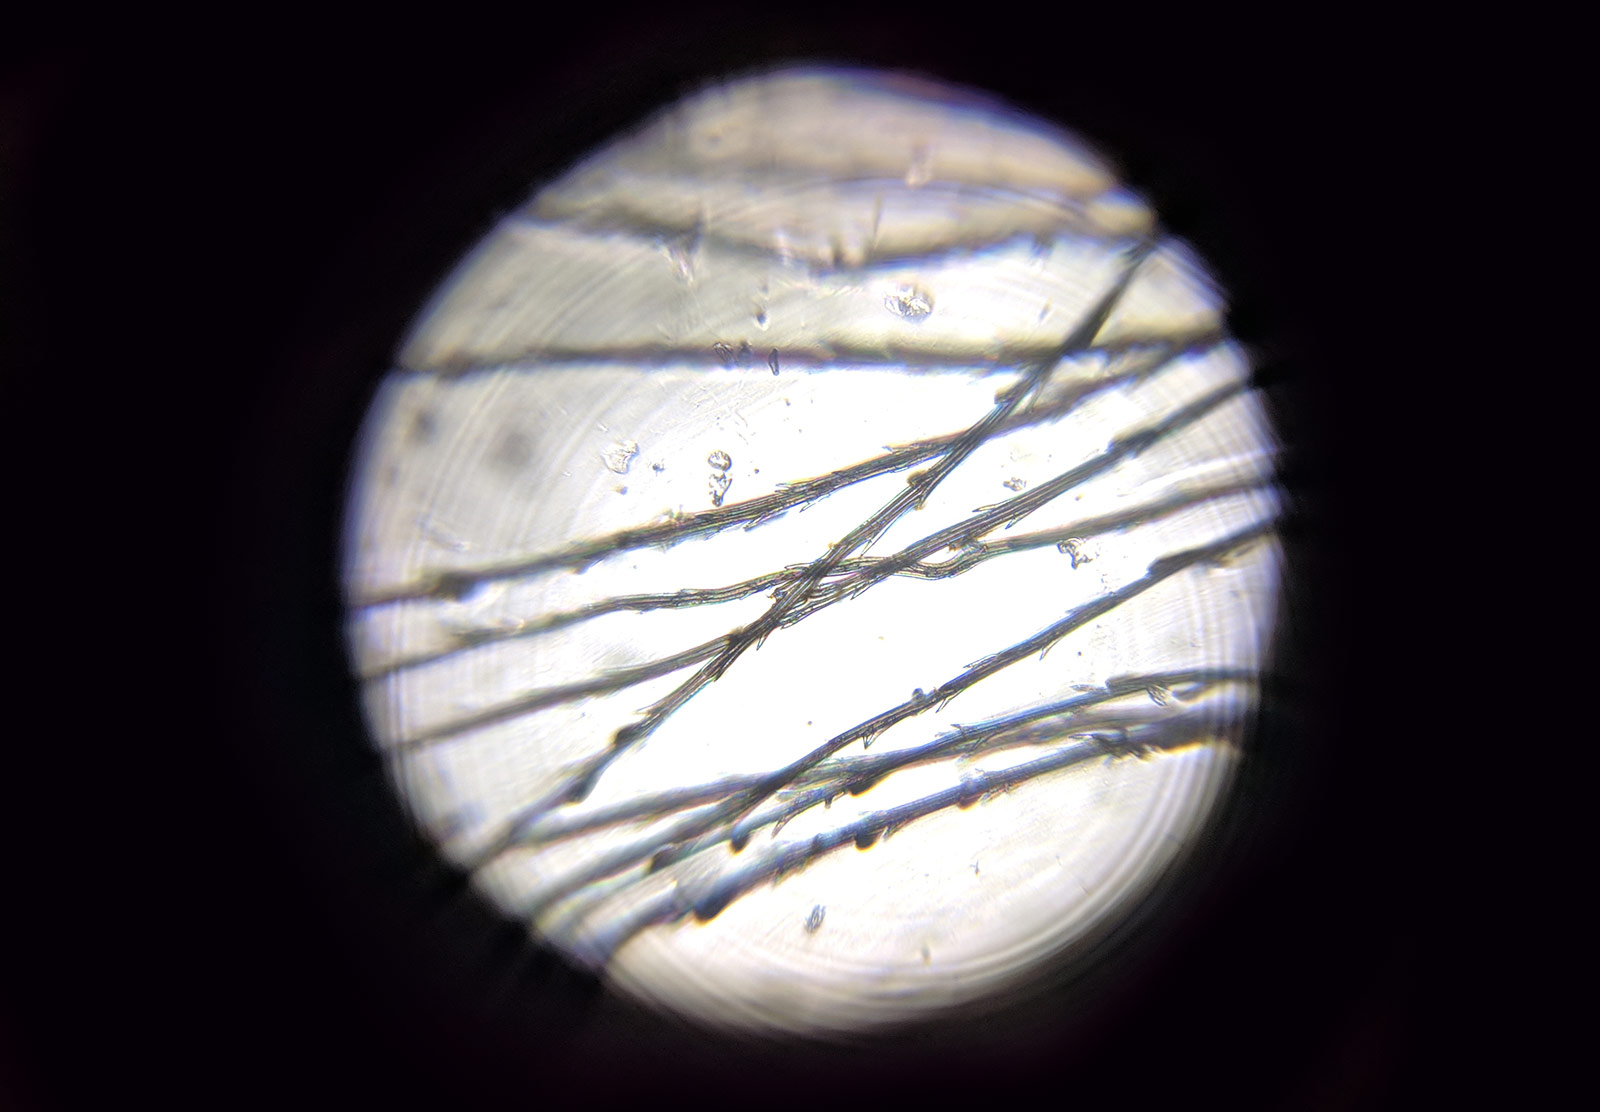 Dandelion seed under microscope